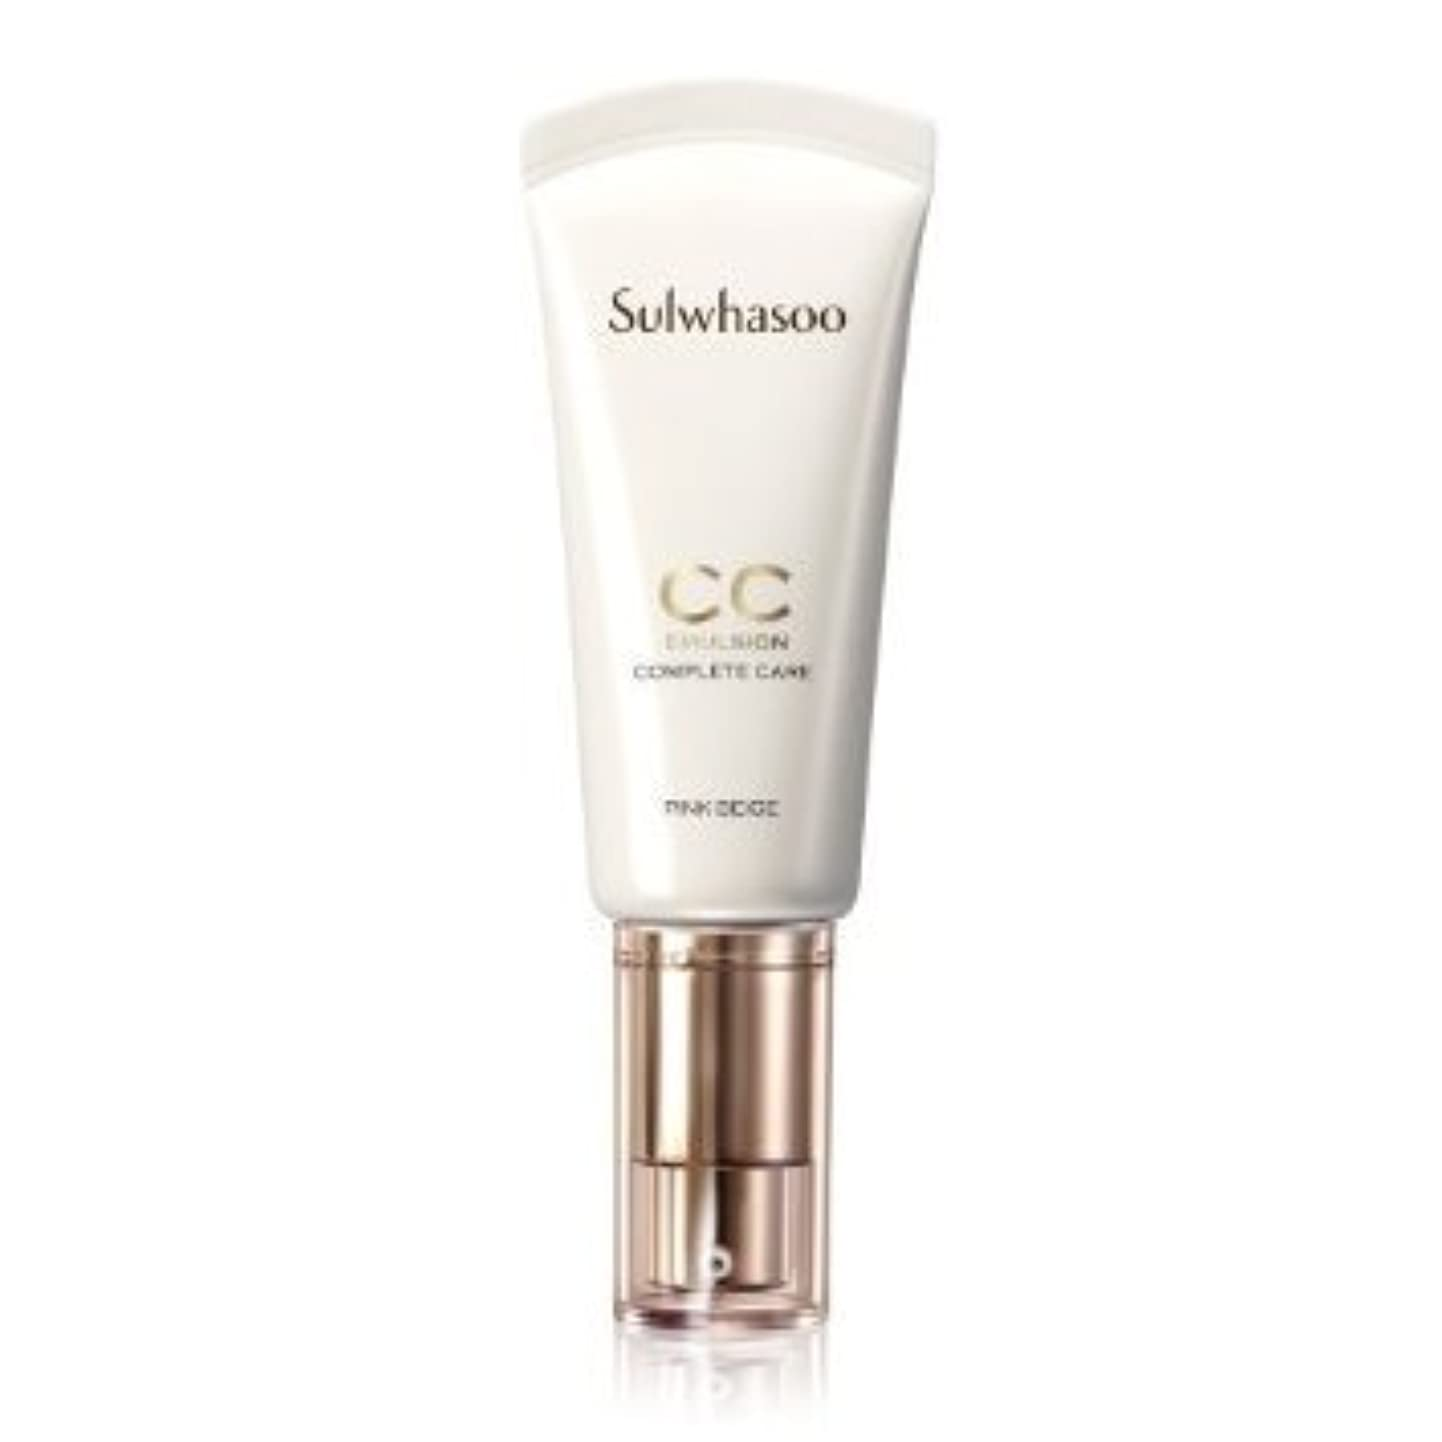 カエル黙認する経由でSulwhasoo CC Emulsion BB Cream Blemish Balm #02 Medium Beige[並行輸入品]